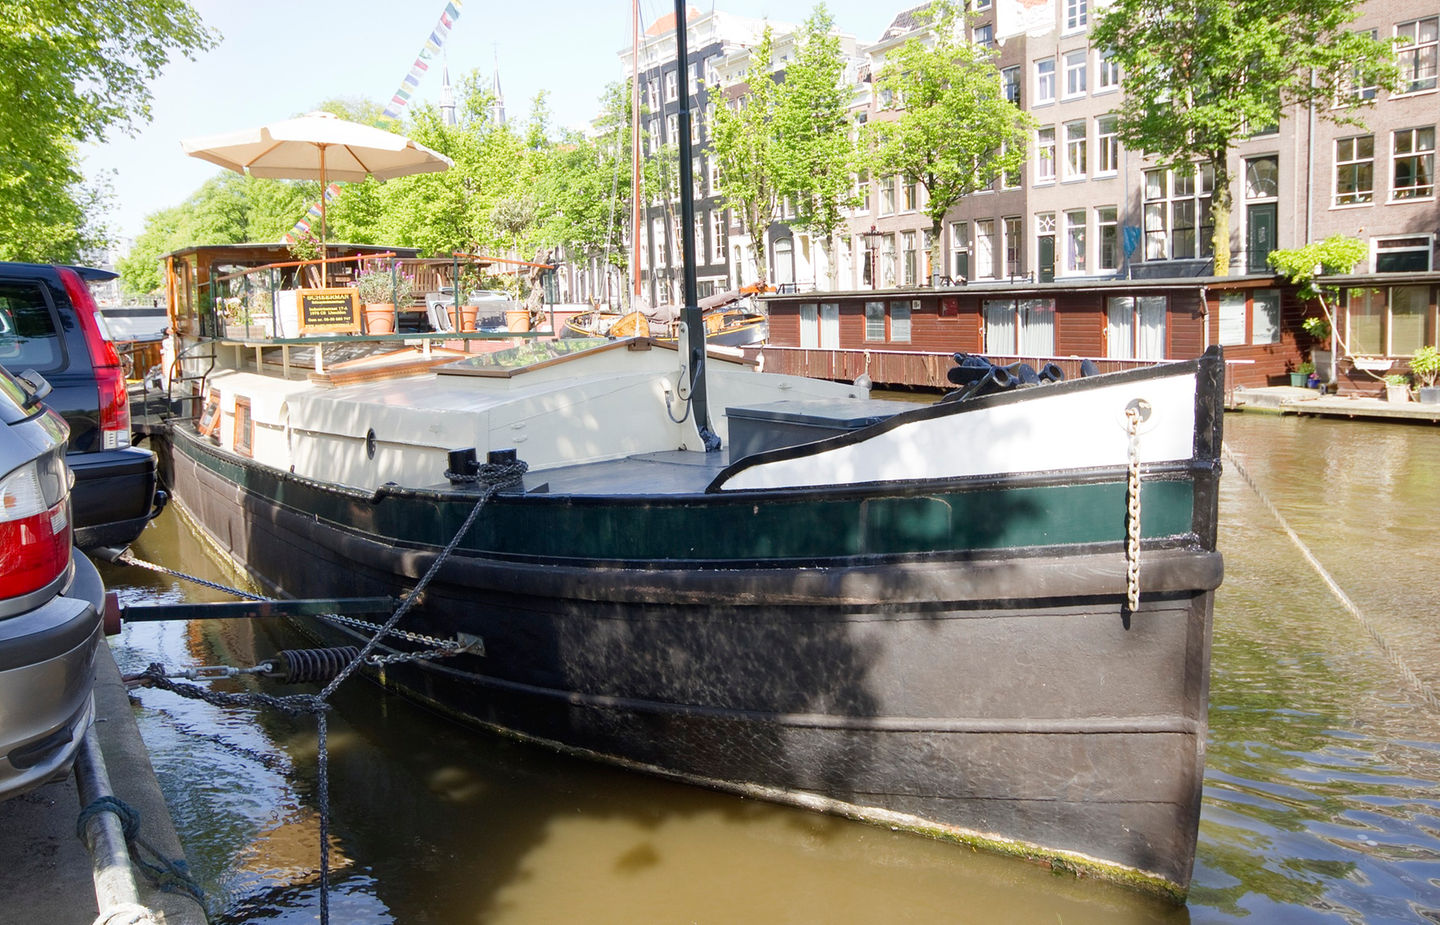 A canal barge houseboat in Amsterdam